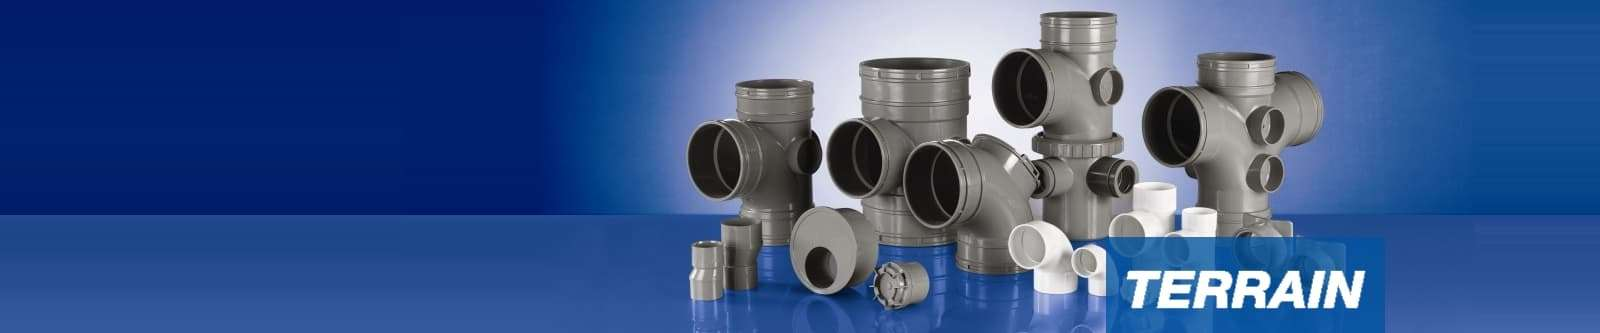 Polypipe Terrain soil and waste plastic pipe systems for the commercial market